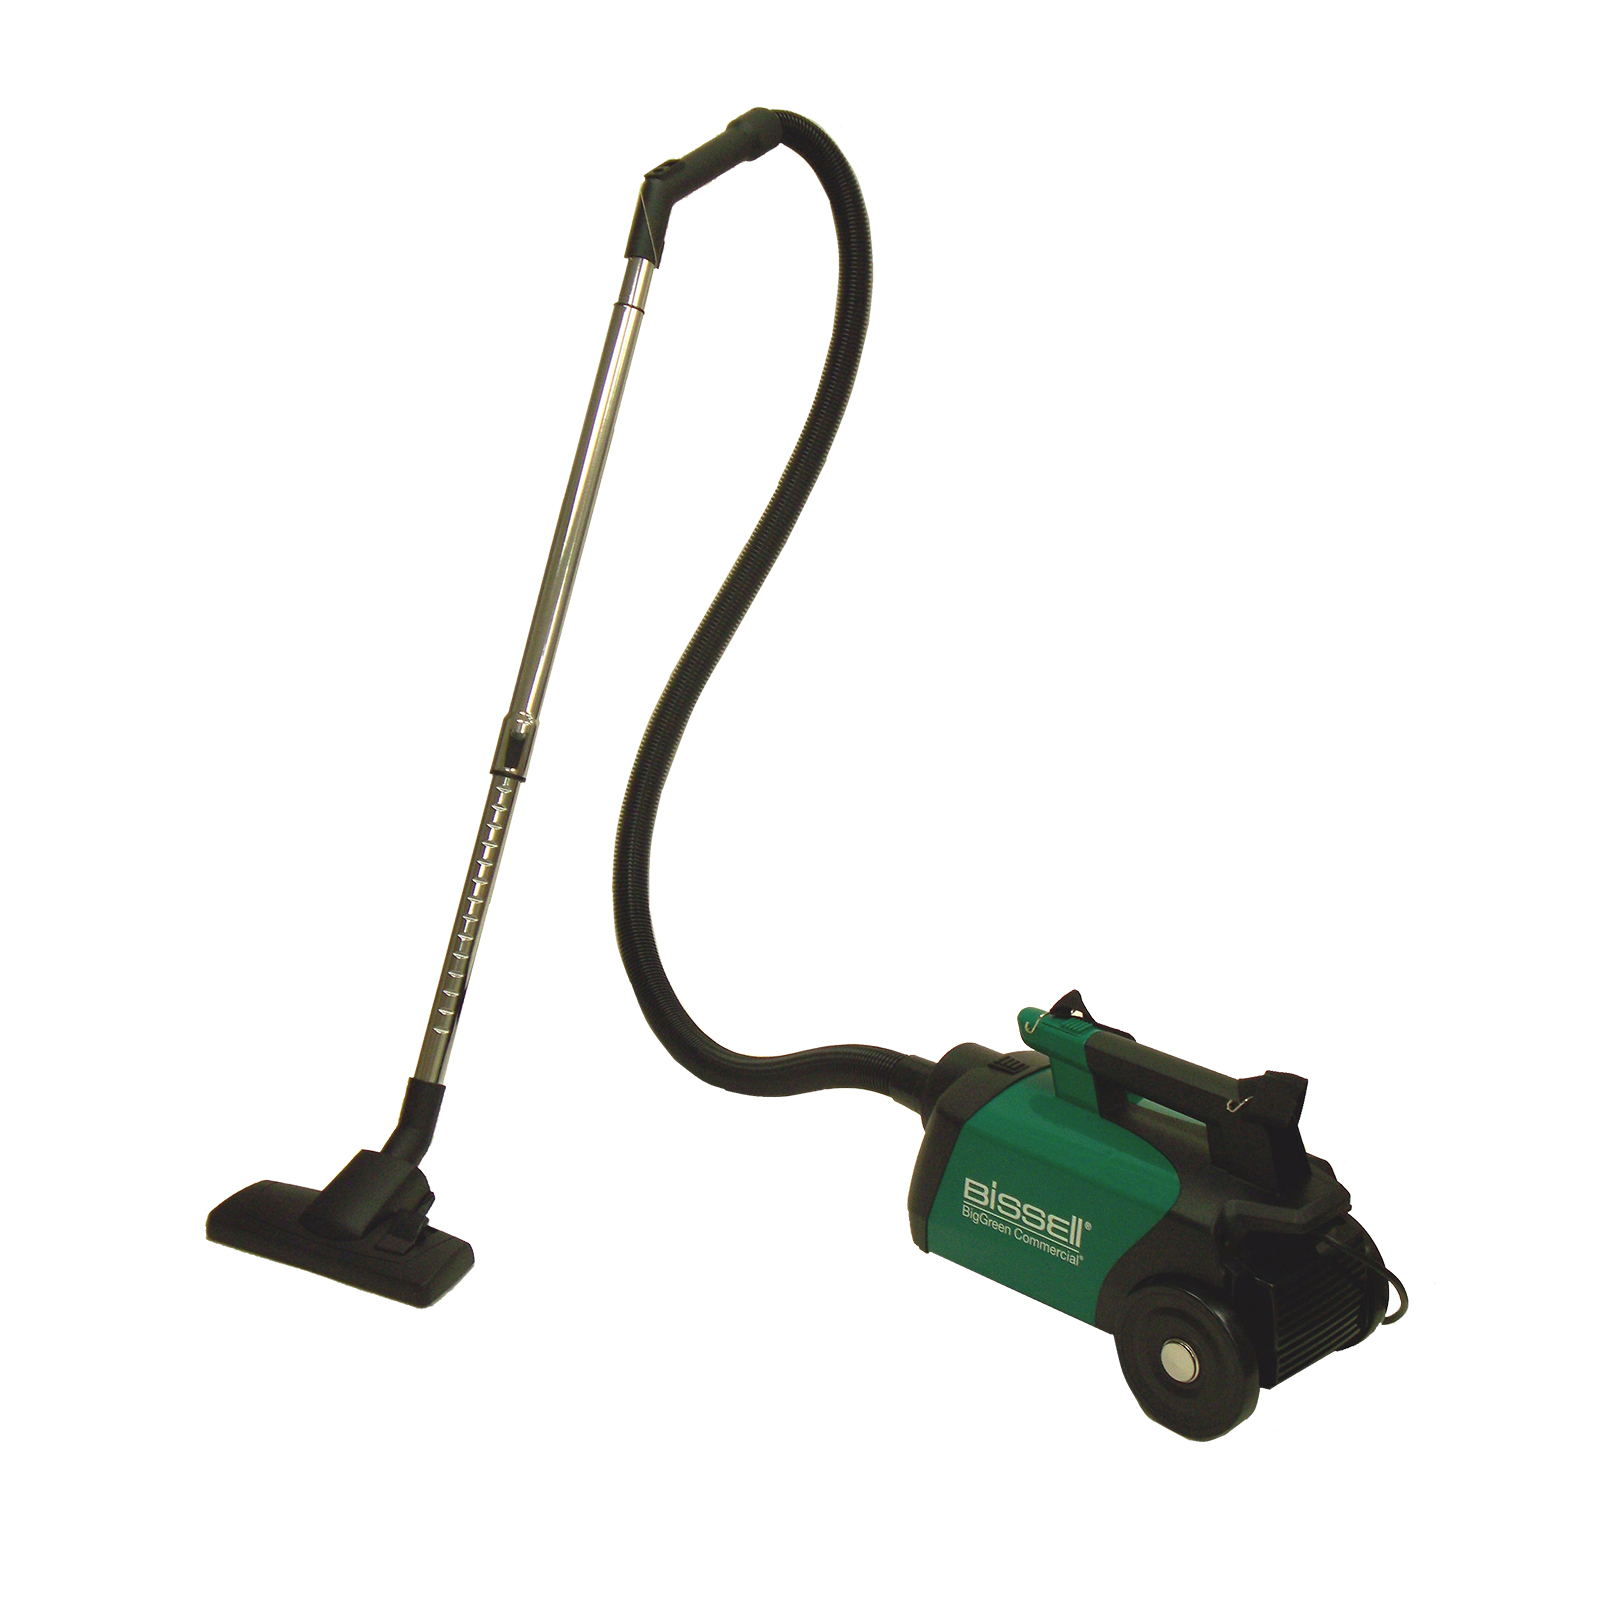 Bissell Big Green Commercial BGC3000 vacuum cleaner